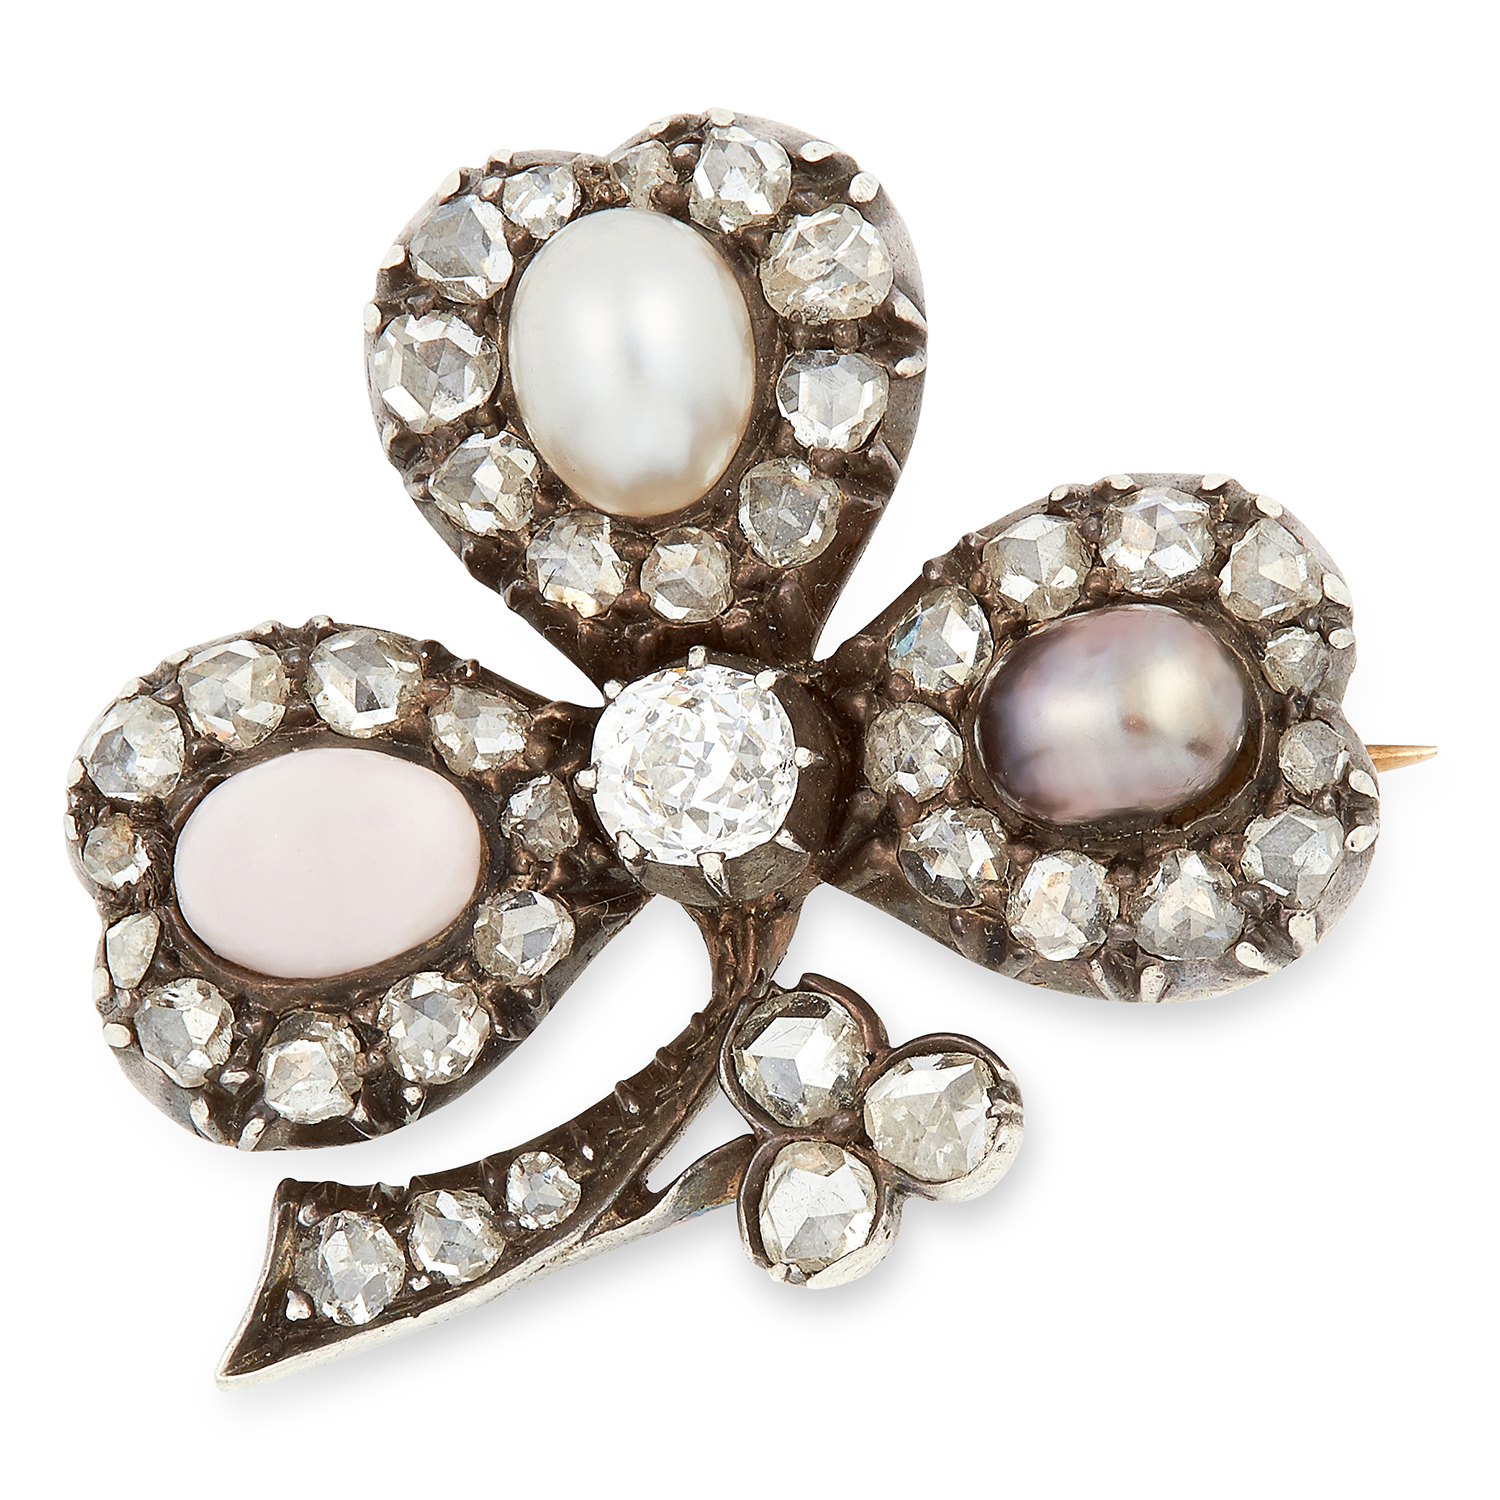 Los 26 - ANTIQUE PEARL, CORAL AND DIAMOND CLOVER BROOCH set with two pearls, a cabochon coral and rose cut